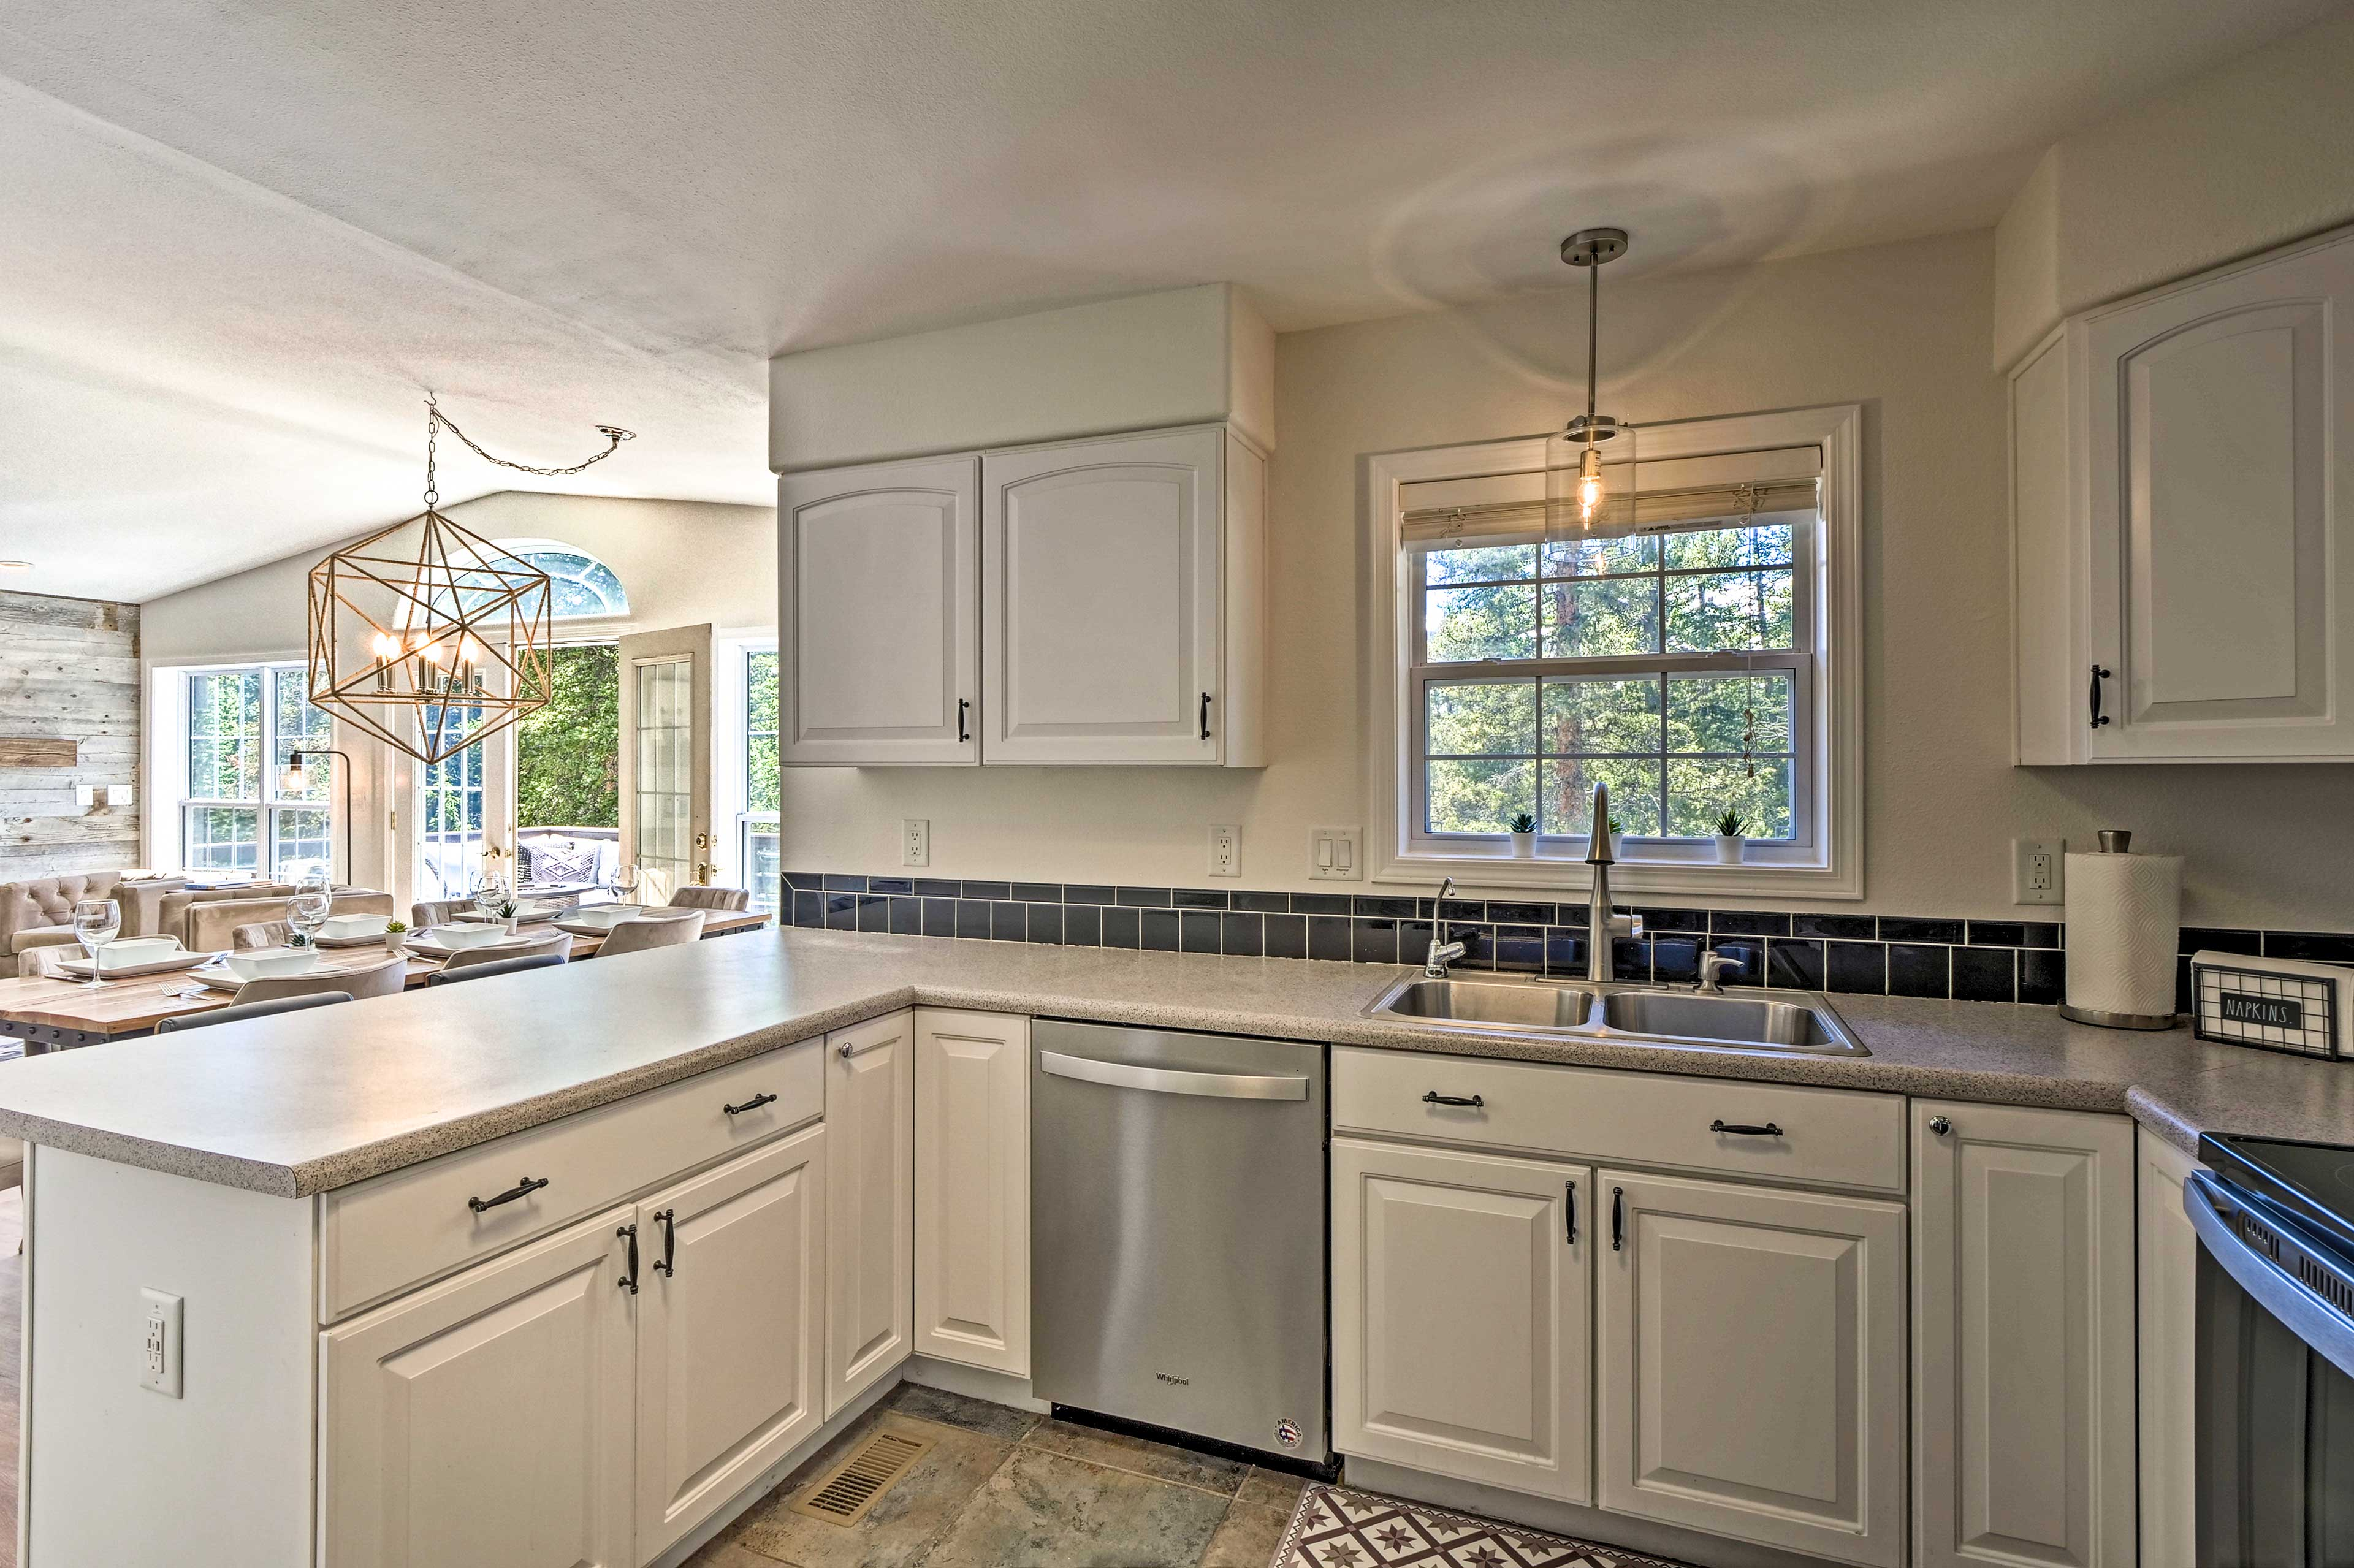 Fully Equipped Kitchen   New Appliances